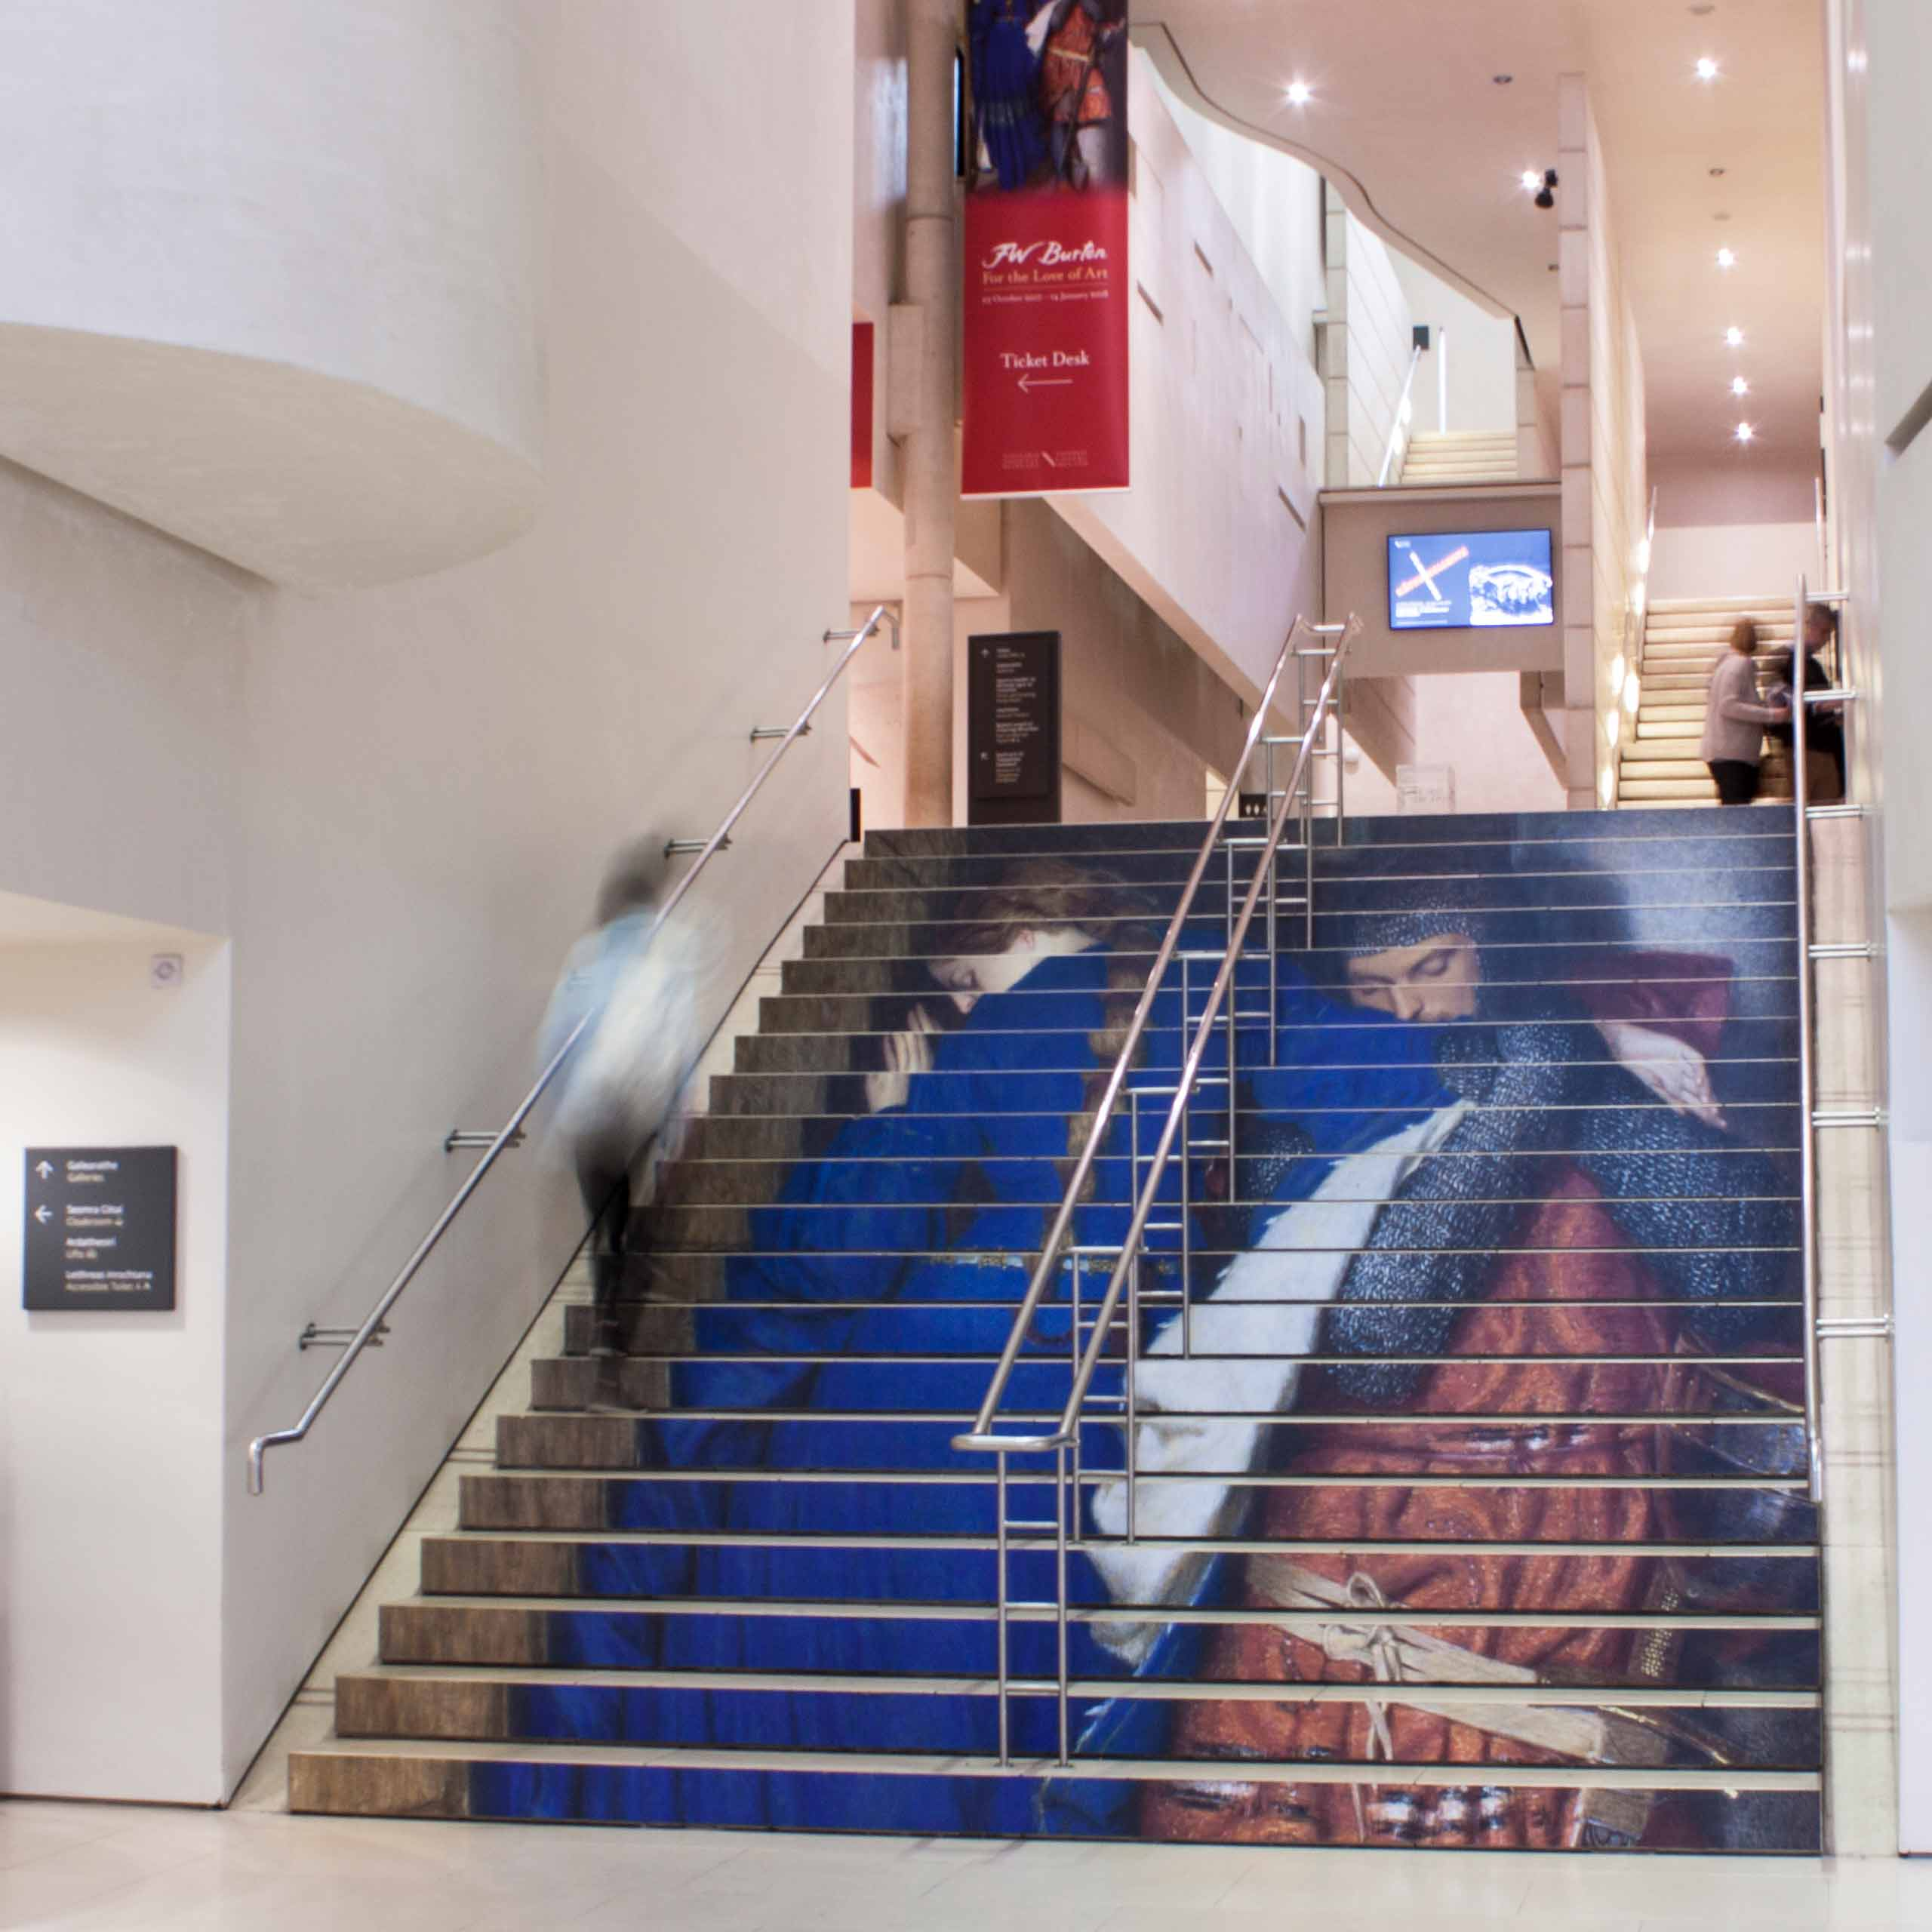 Image of Frederic William Burton: For the Love of Art exhibition stairs graphic.